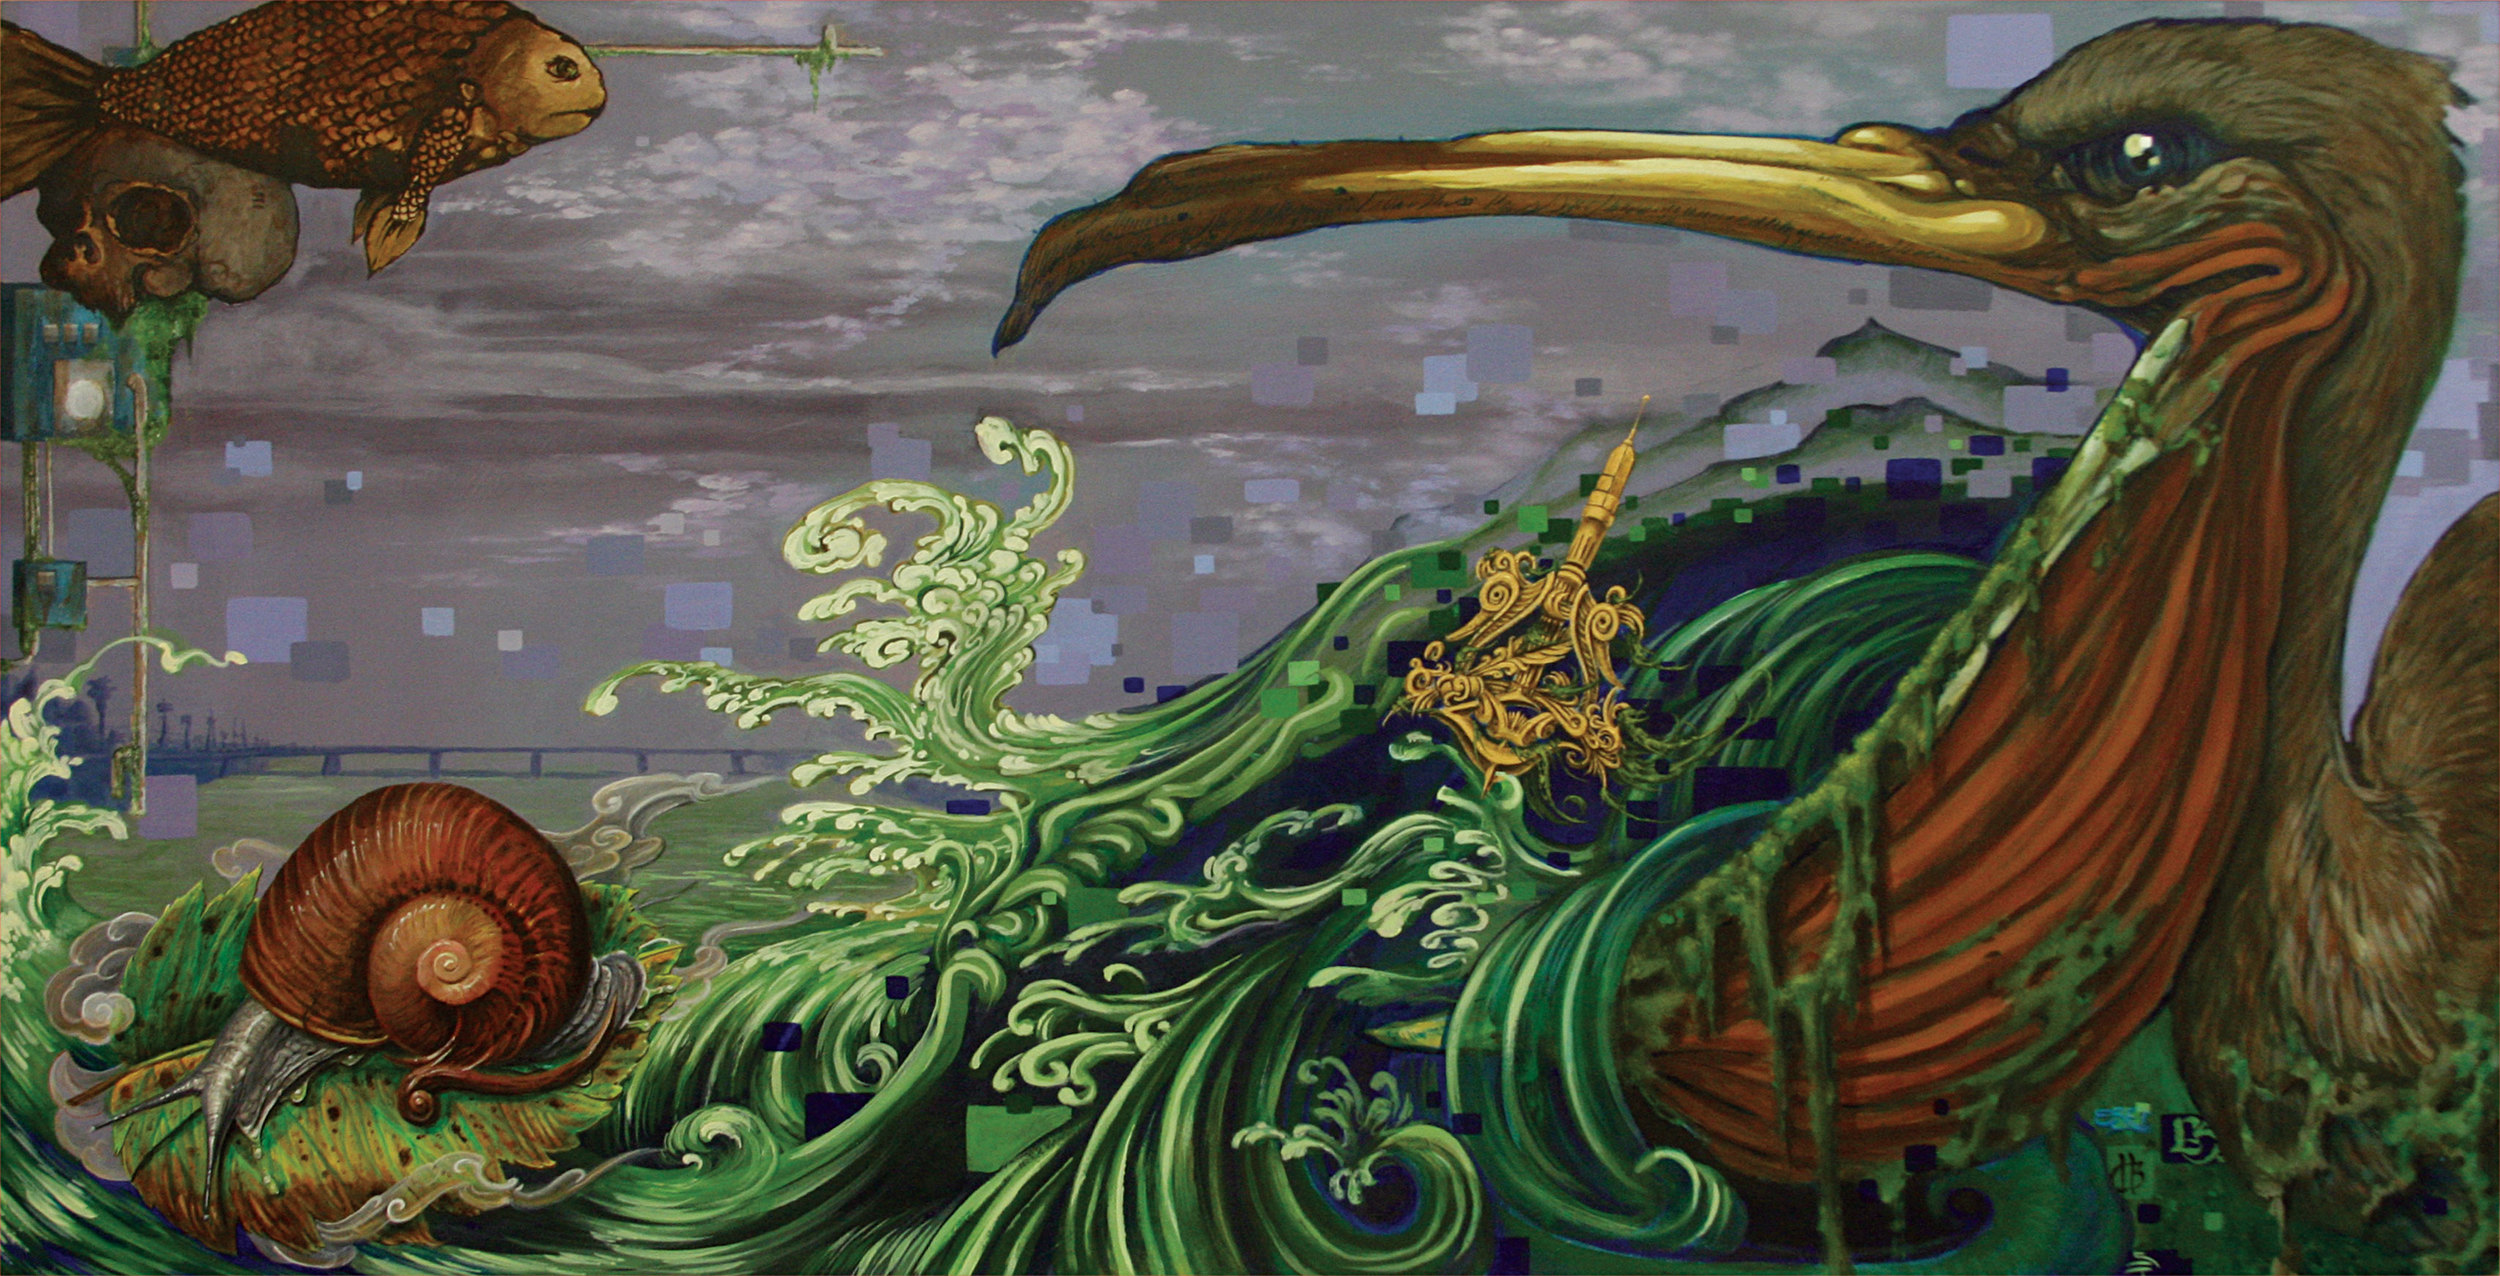 Christopher Brand, Evan Skrederstu, Espi & Steve Martinez.  It Flows . 2009 - acrylic on board, 2' x 4'.